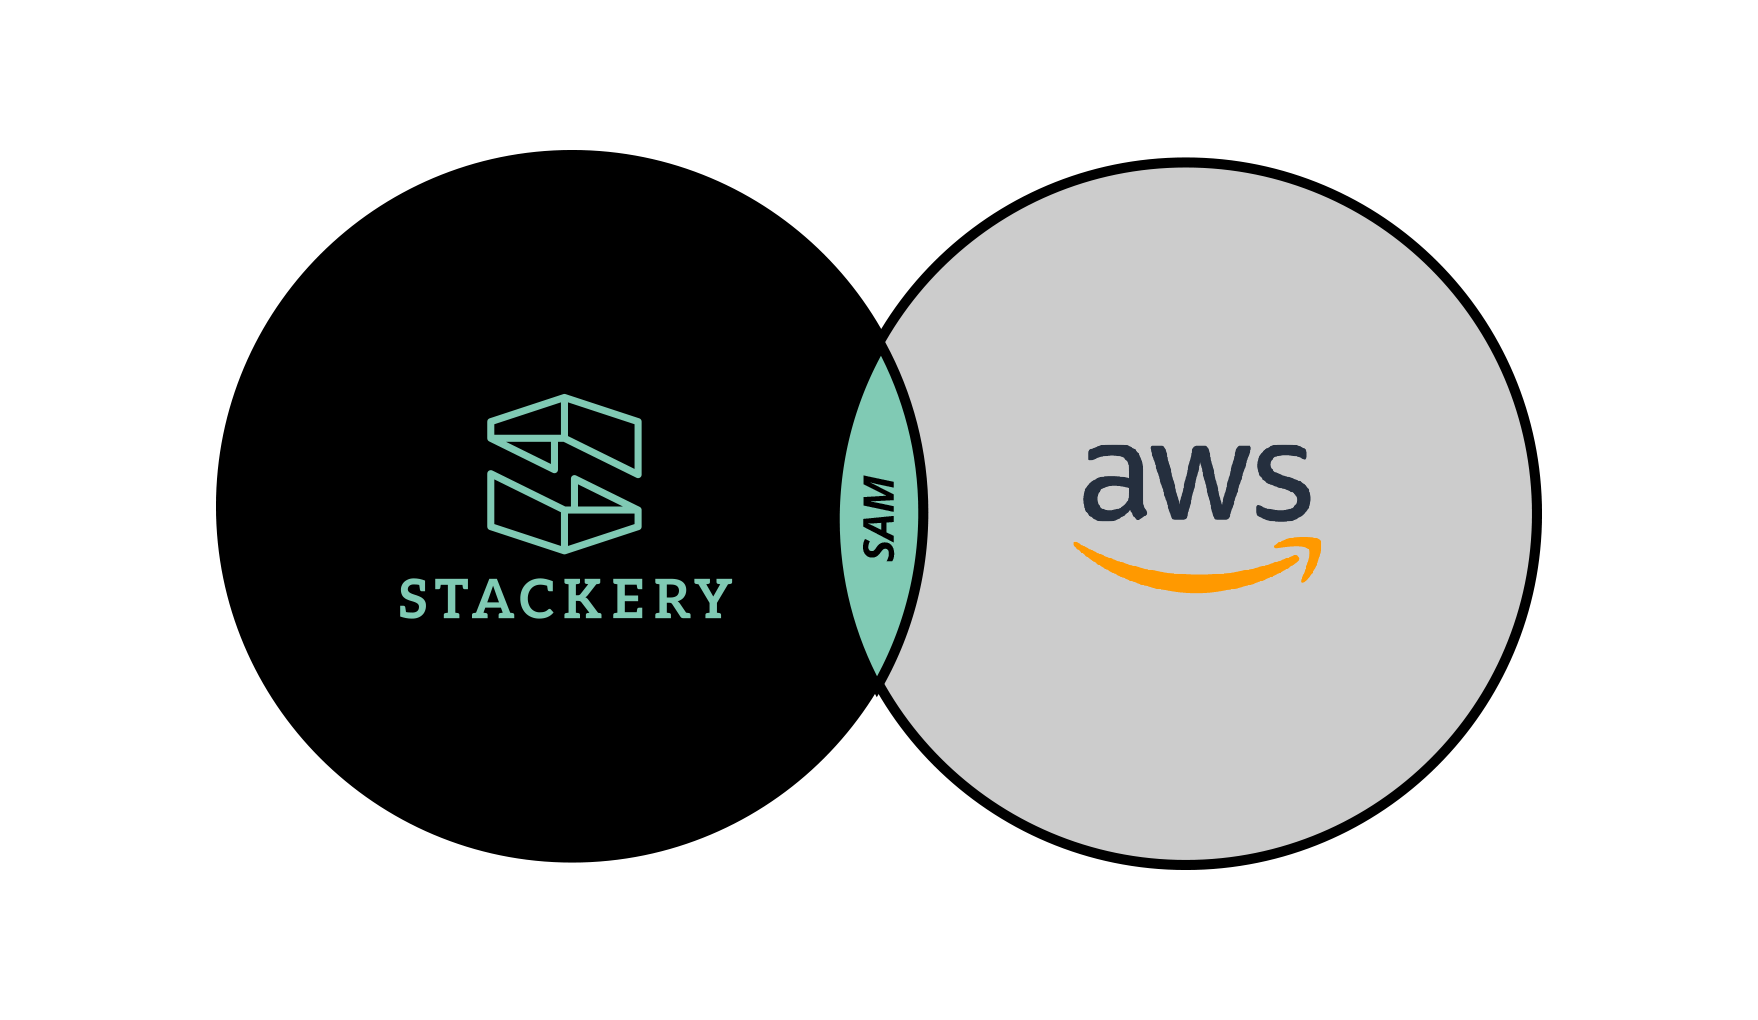 Stackery is Now Running on SAM (Serverless Application Model) from AWS